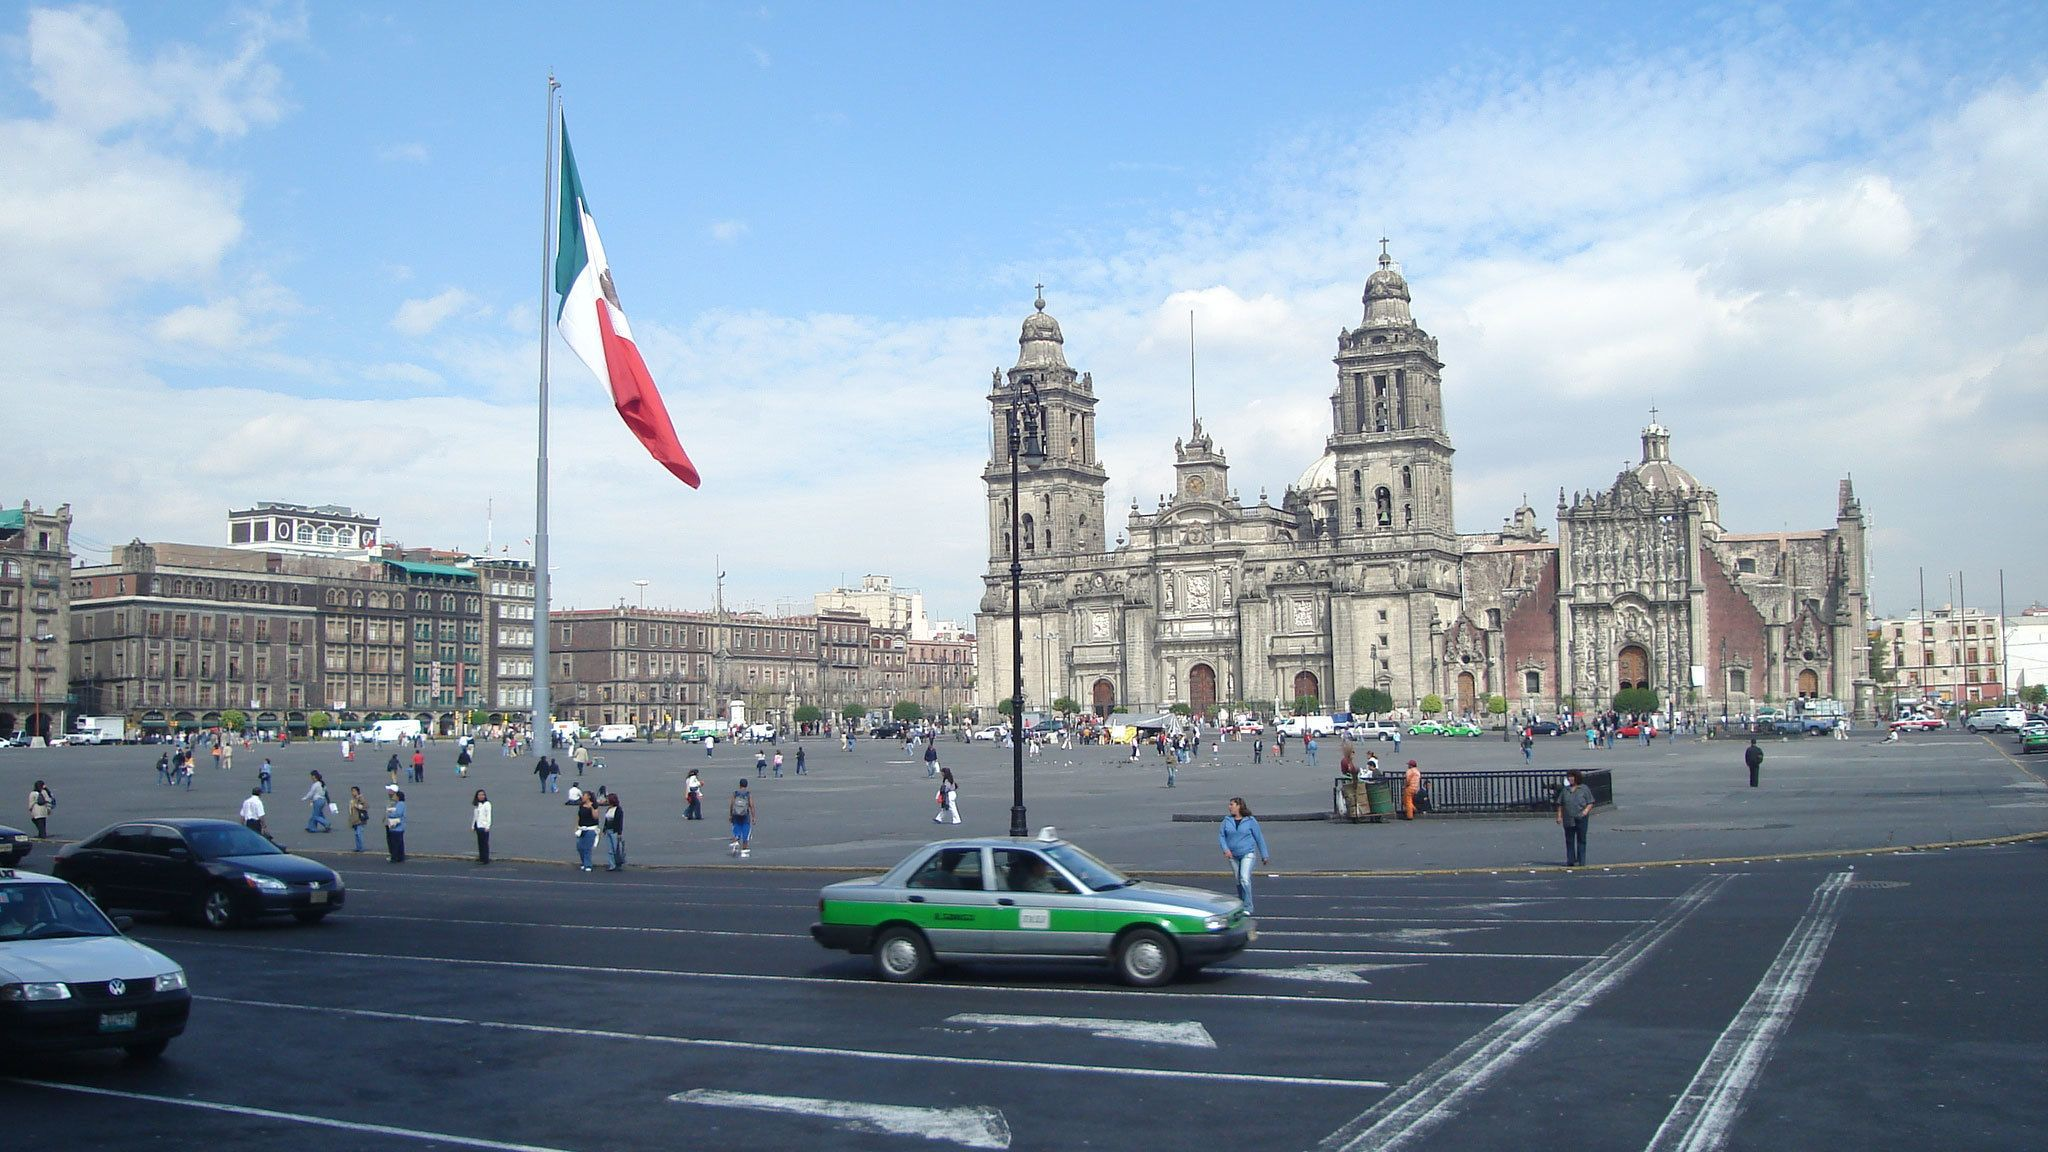 View of the Mexico City Metropolitan Cathedral